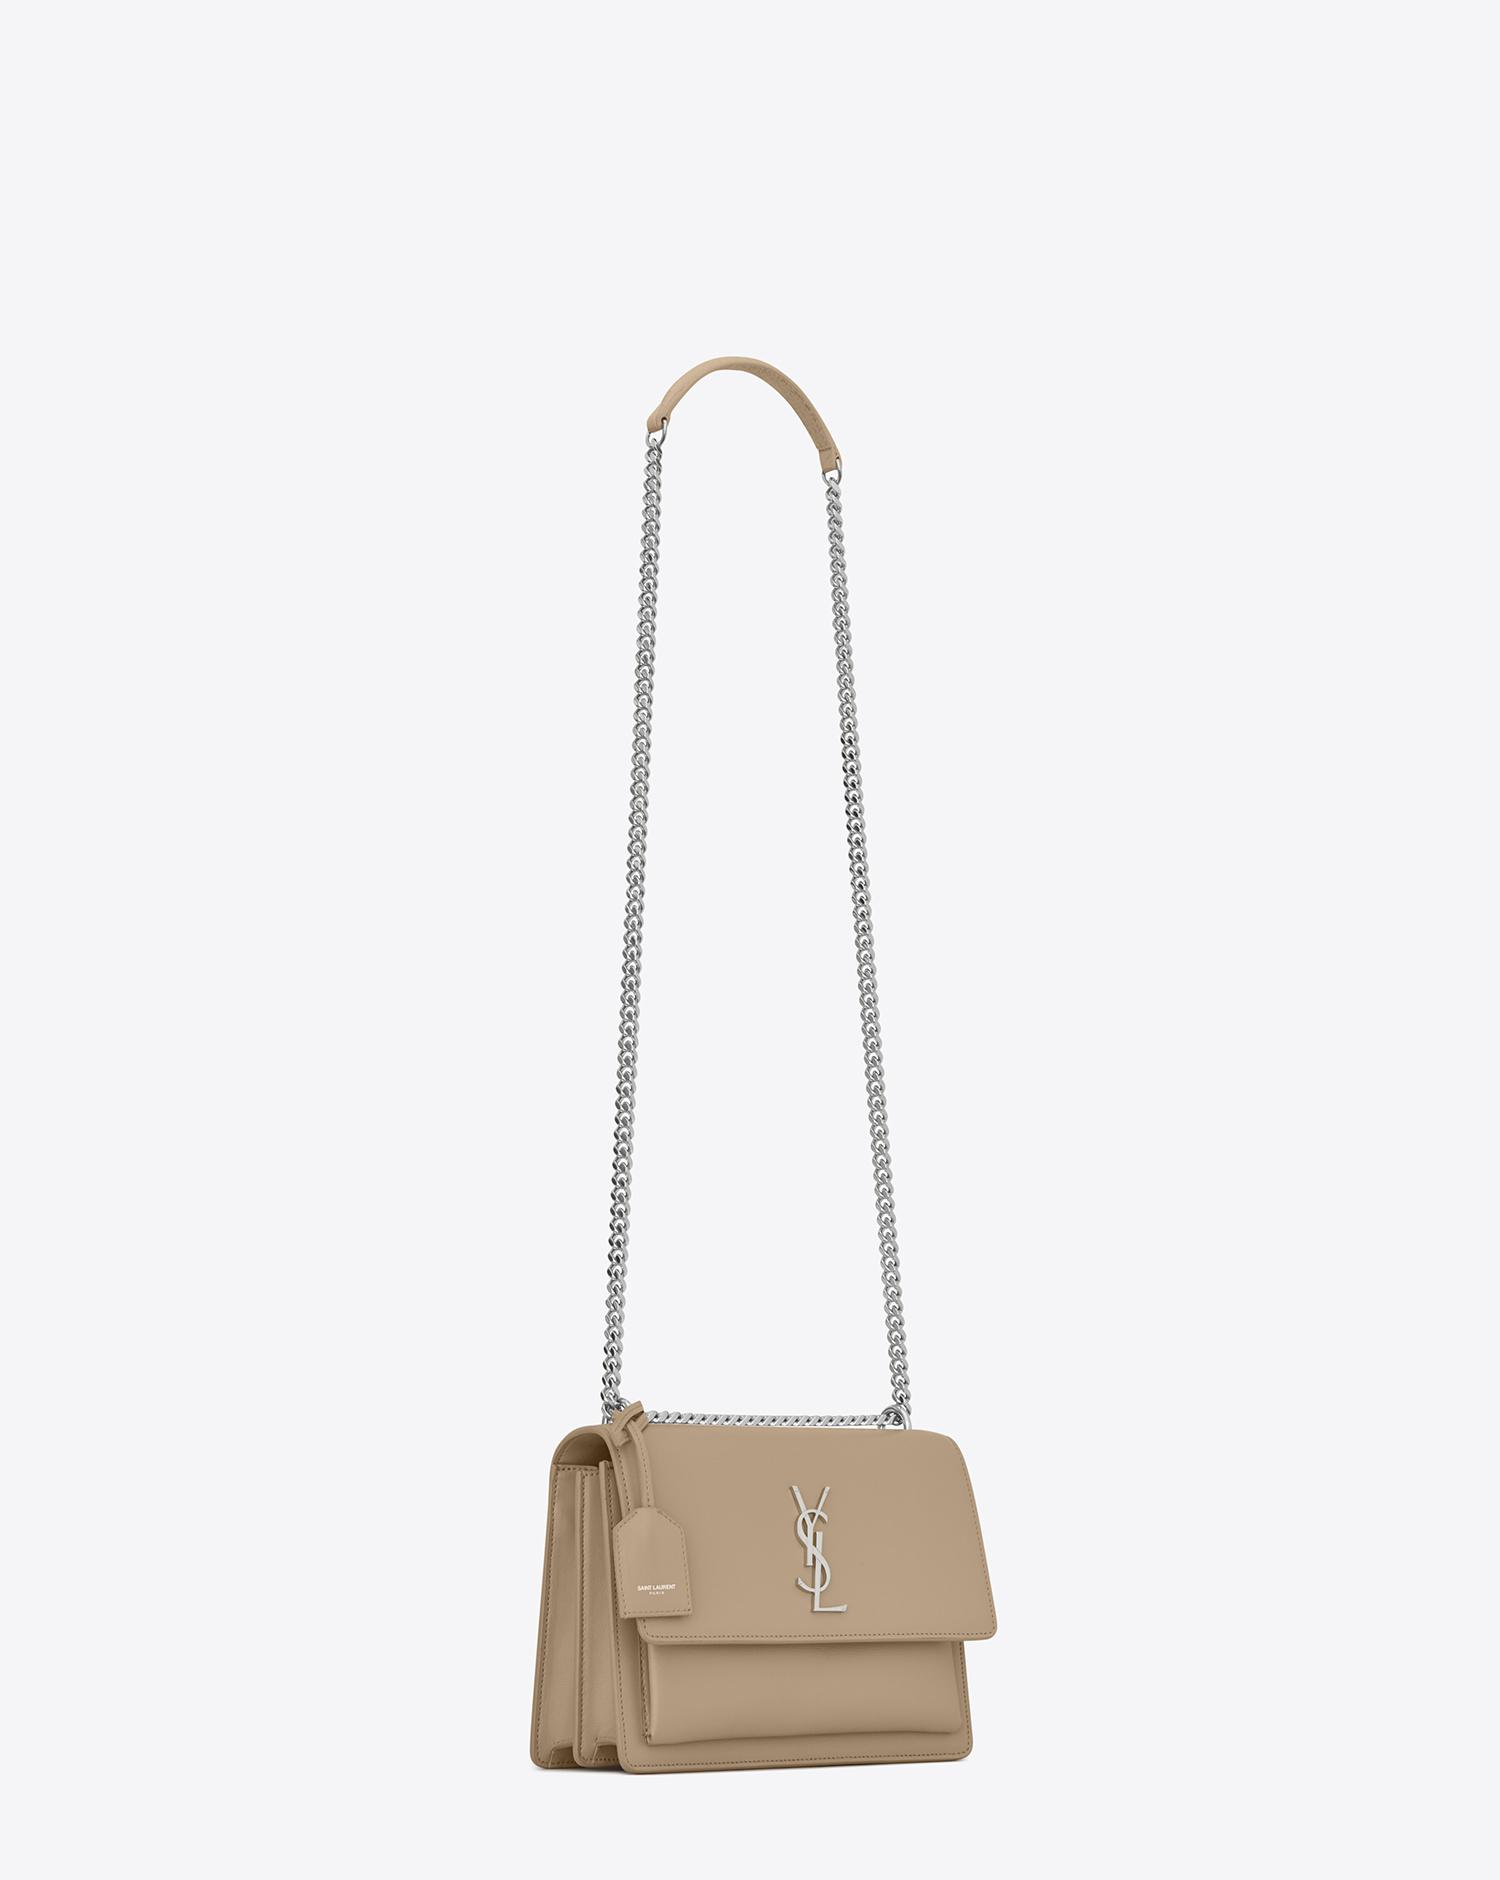 Lyst - Saint Laurent Sunset Medium In Smooth Leather in Natural a496b4b7fece9